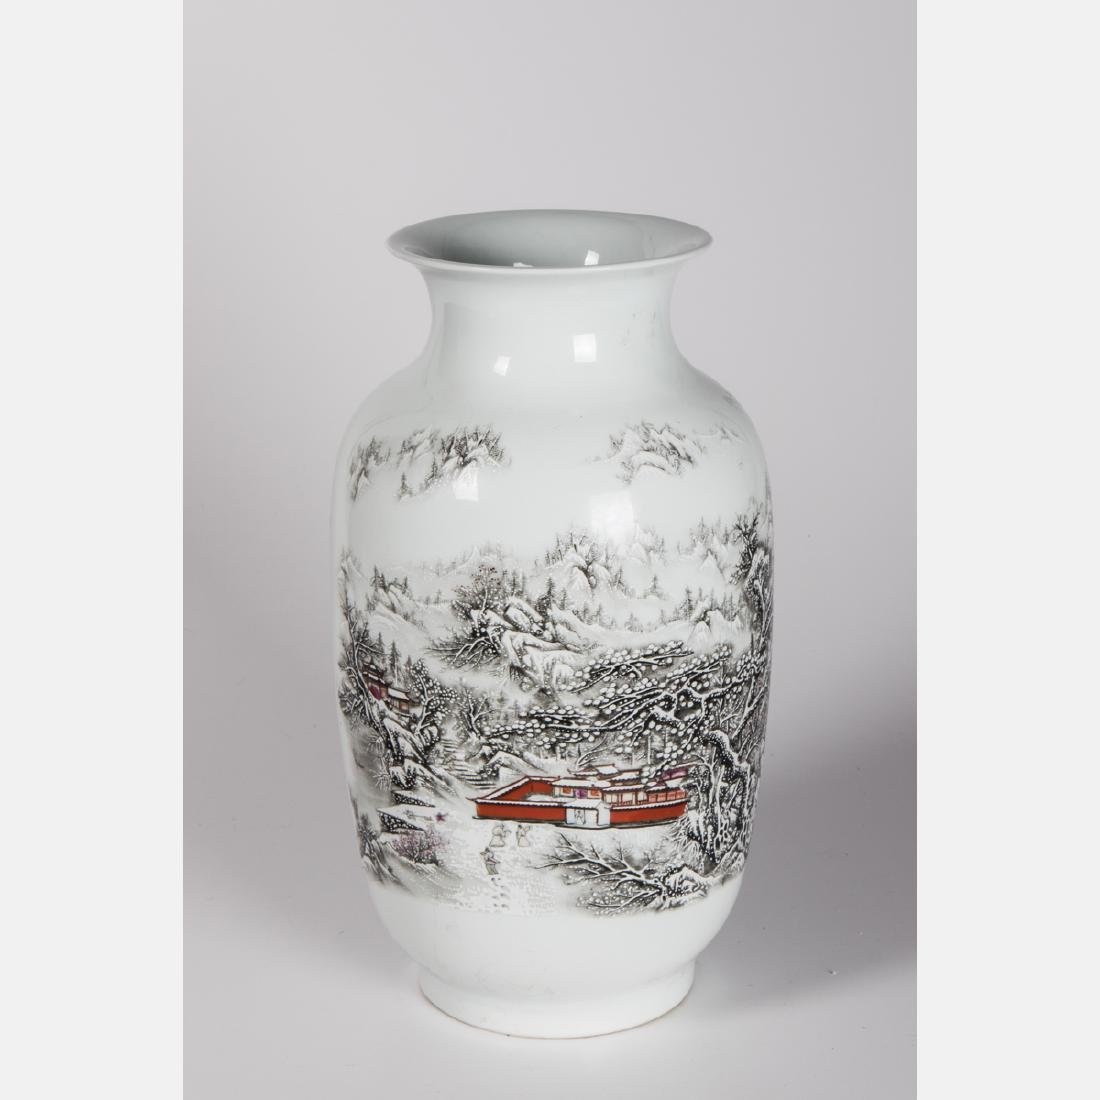 A Chinese Porcelain Vase, 20th Century.